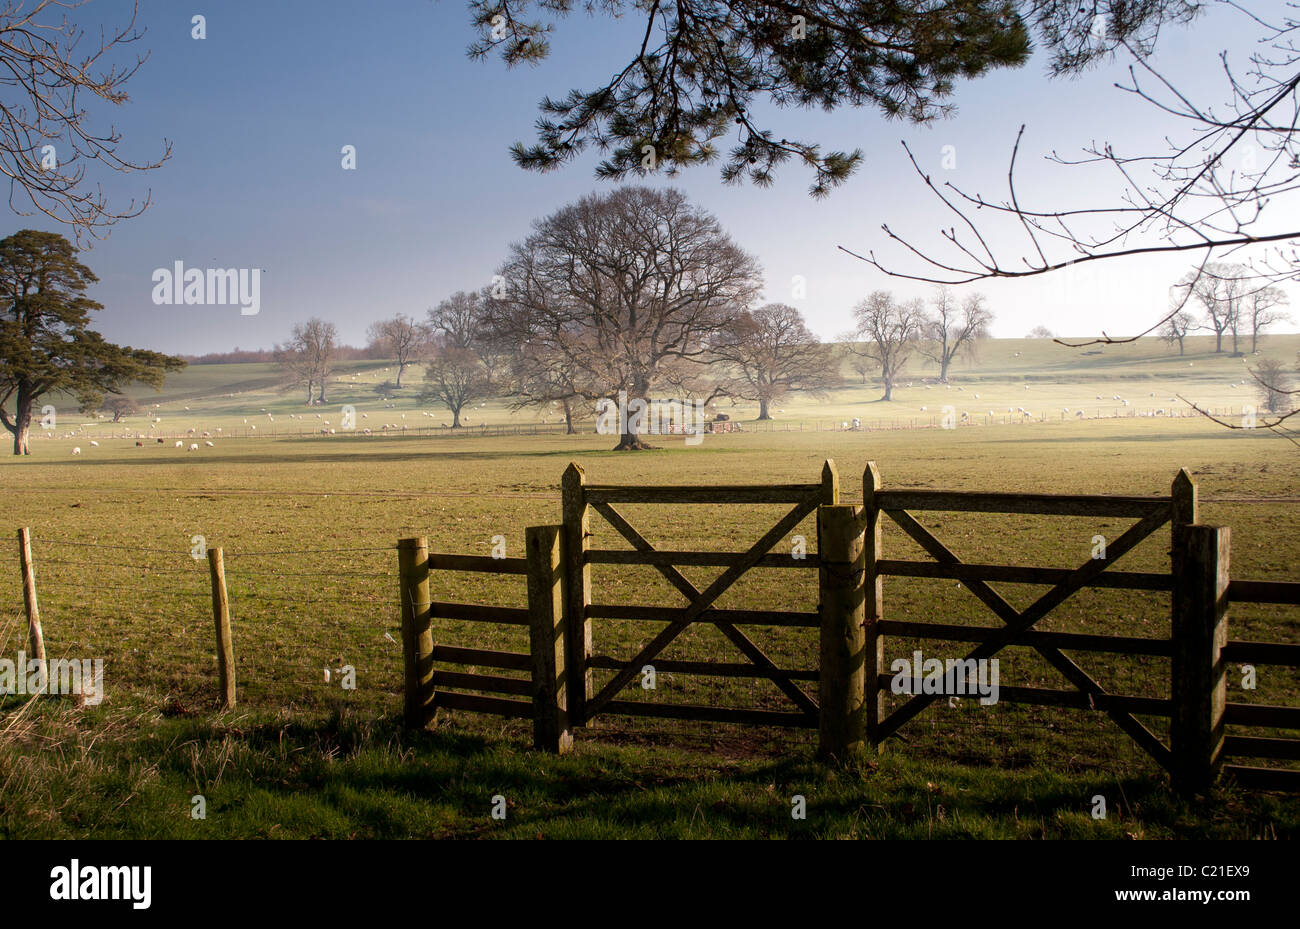 A pastoral scene of sheep grazing in a field. - Stock Image